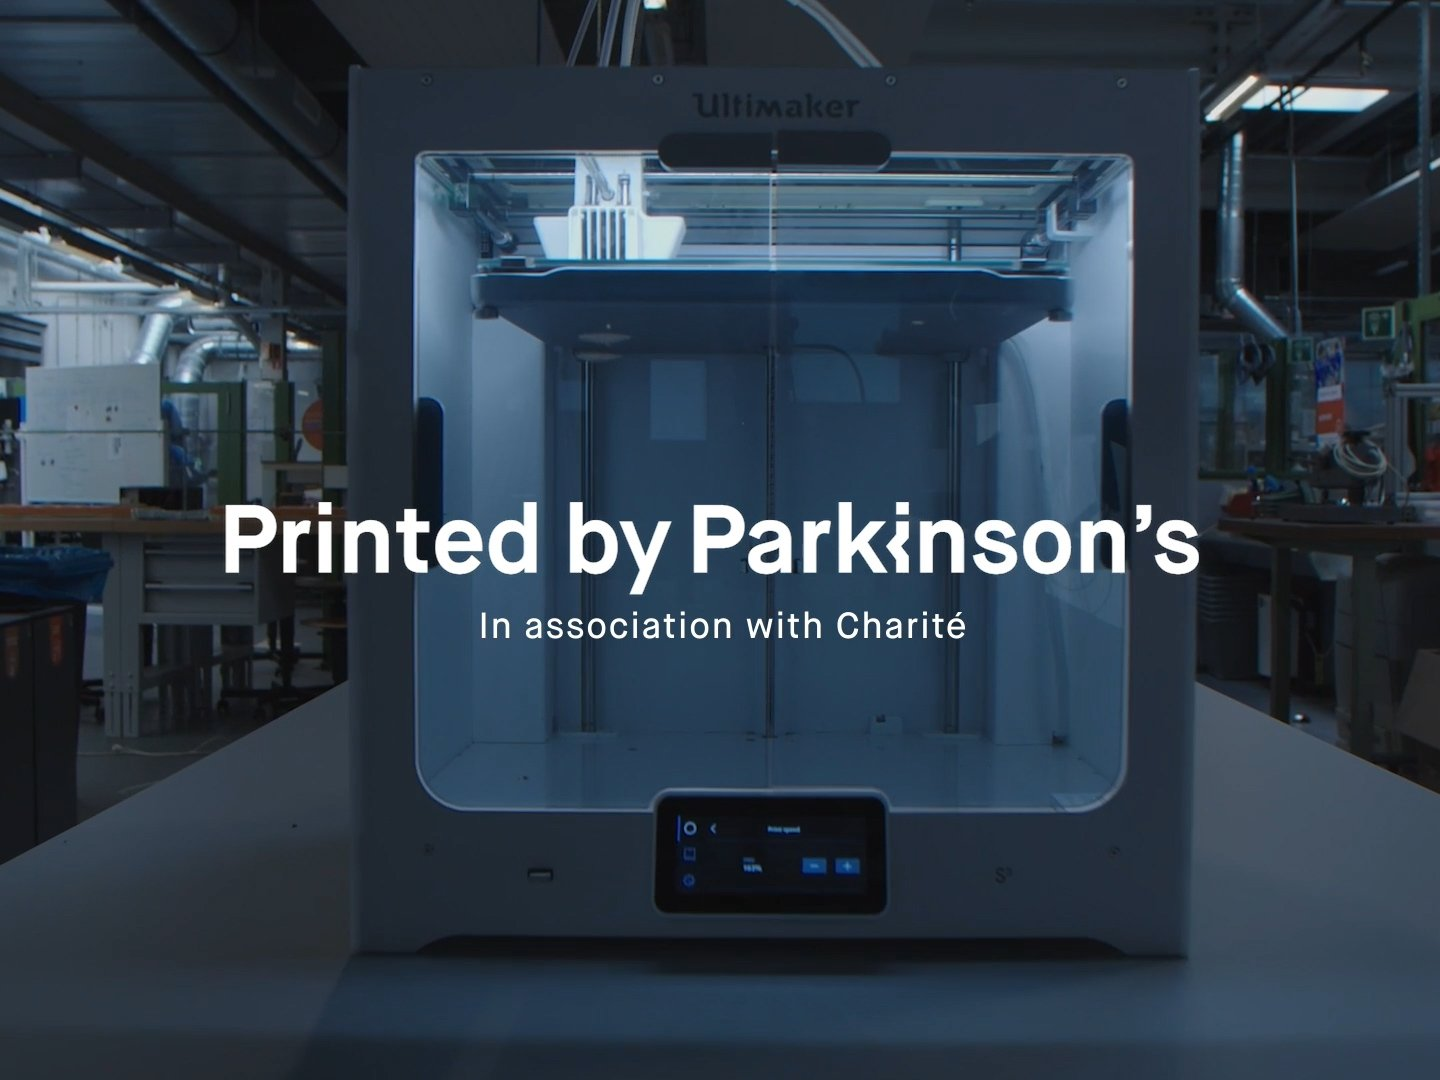 Printed by Parkinson's Thumbnail